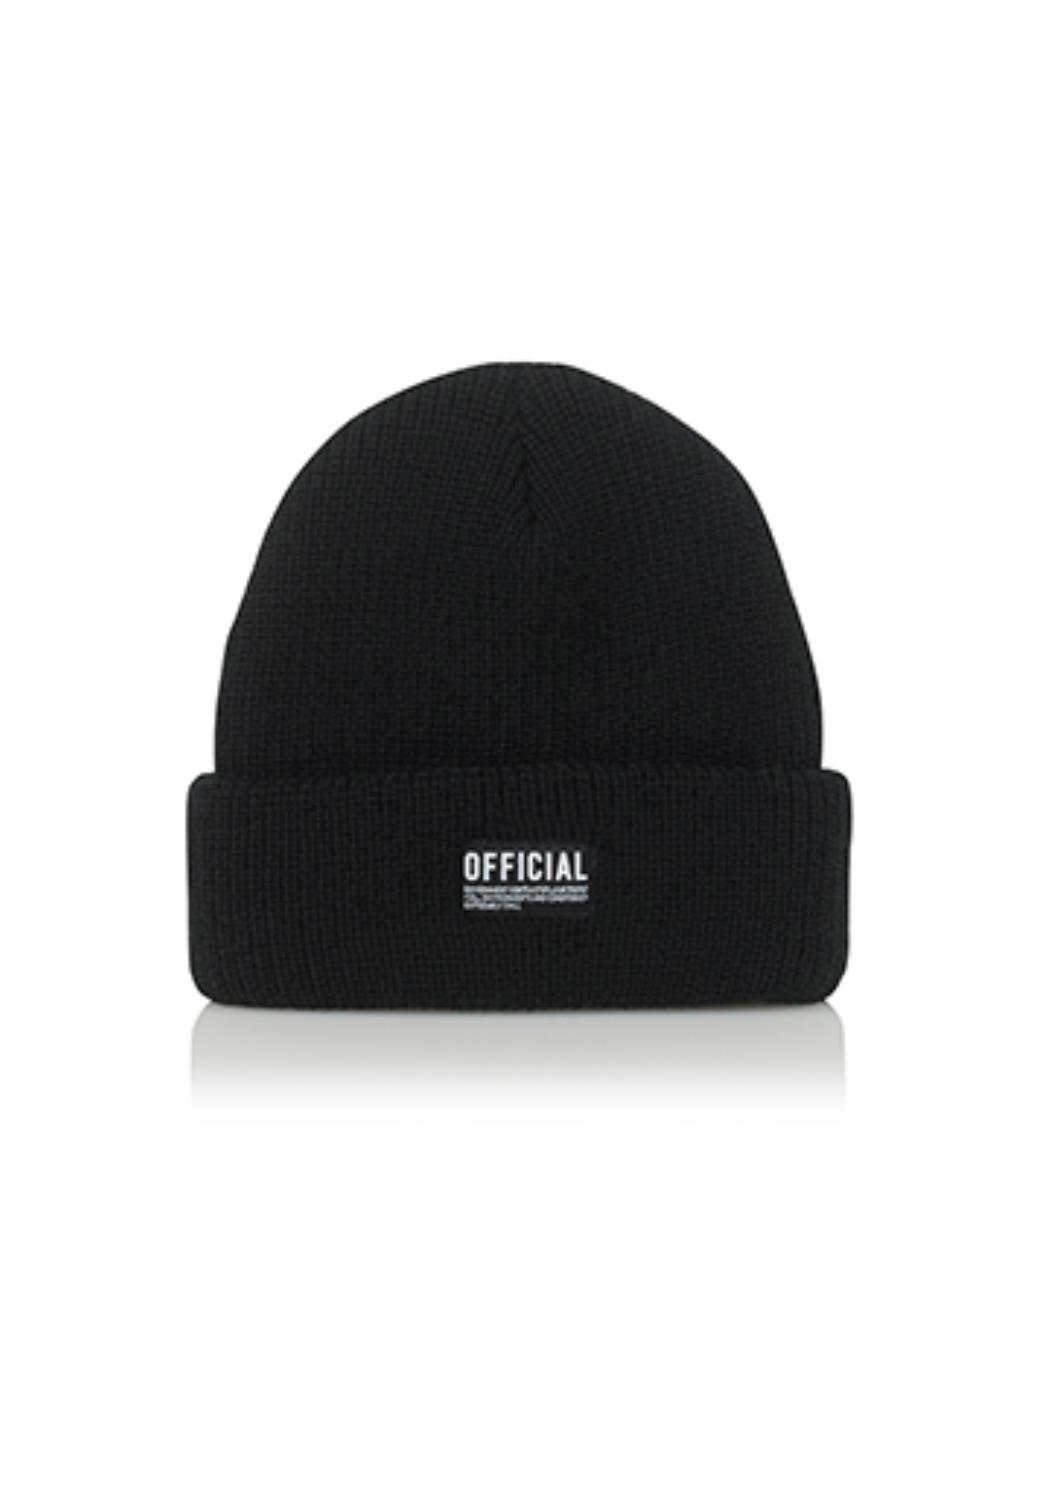 OFFICIAL - Everyday Spec Skate Beanie